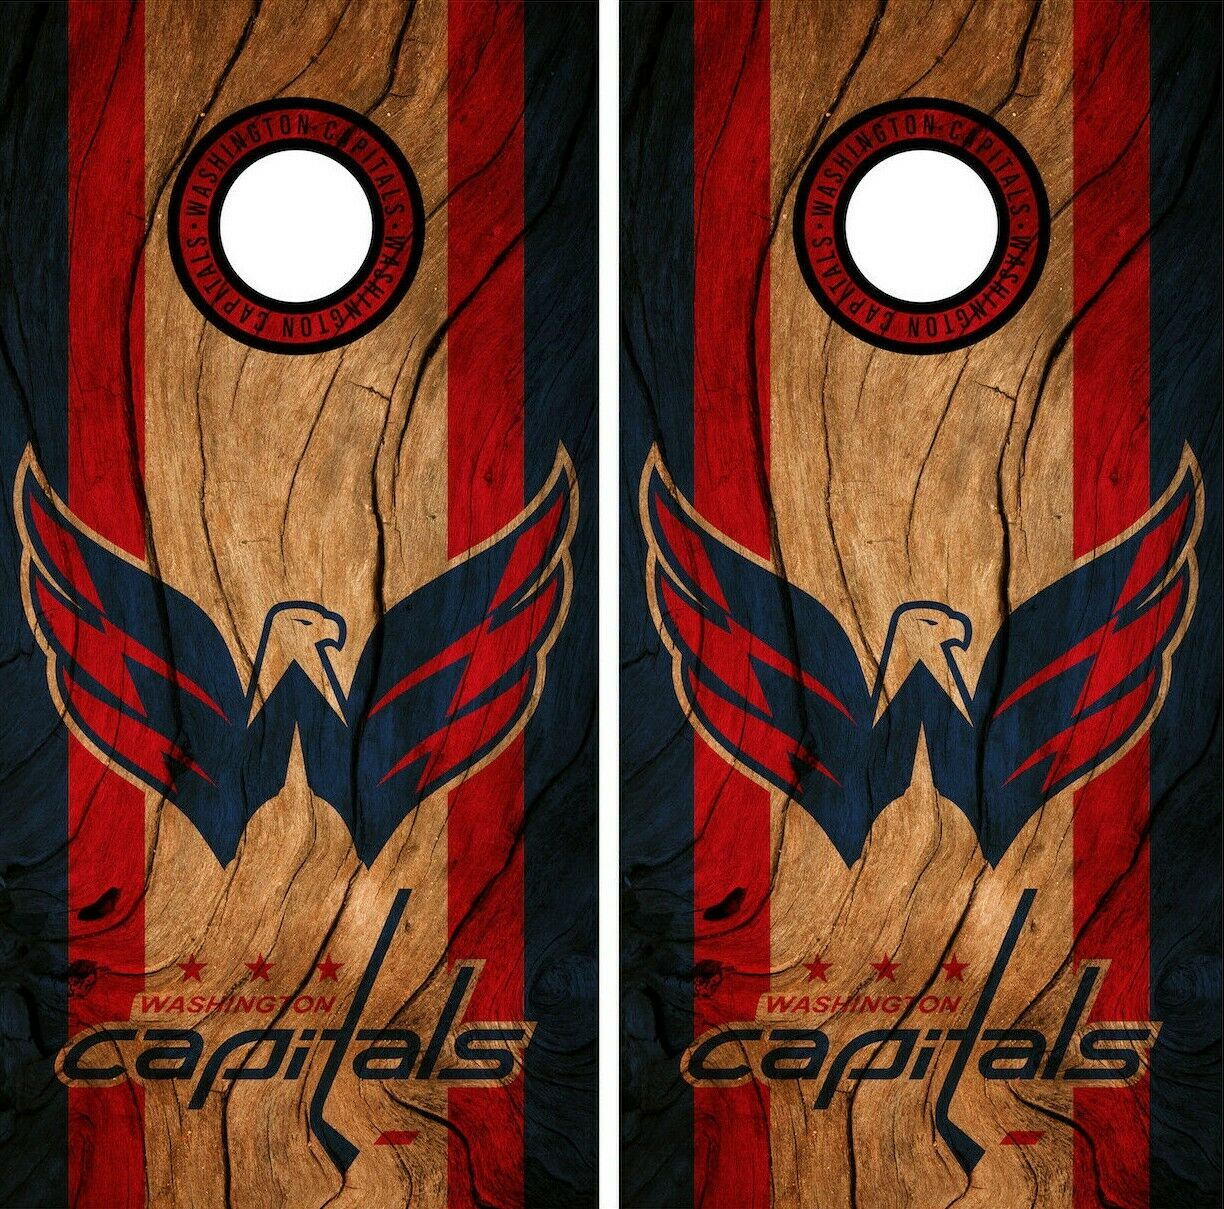 Washington Capitals Cornhole  Wrap NHL Decal Wood Vinyl Gameboard Skin Set YD62  after-sale protection